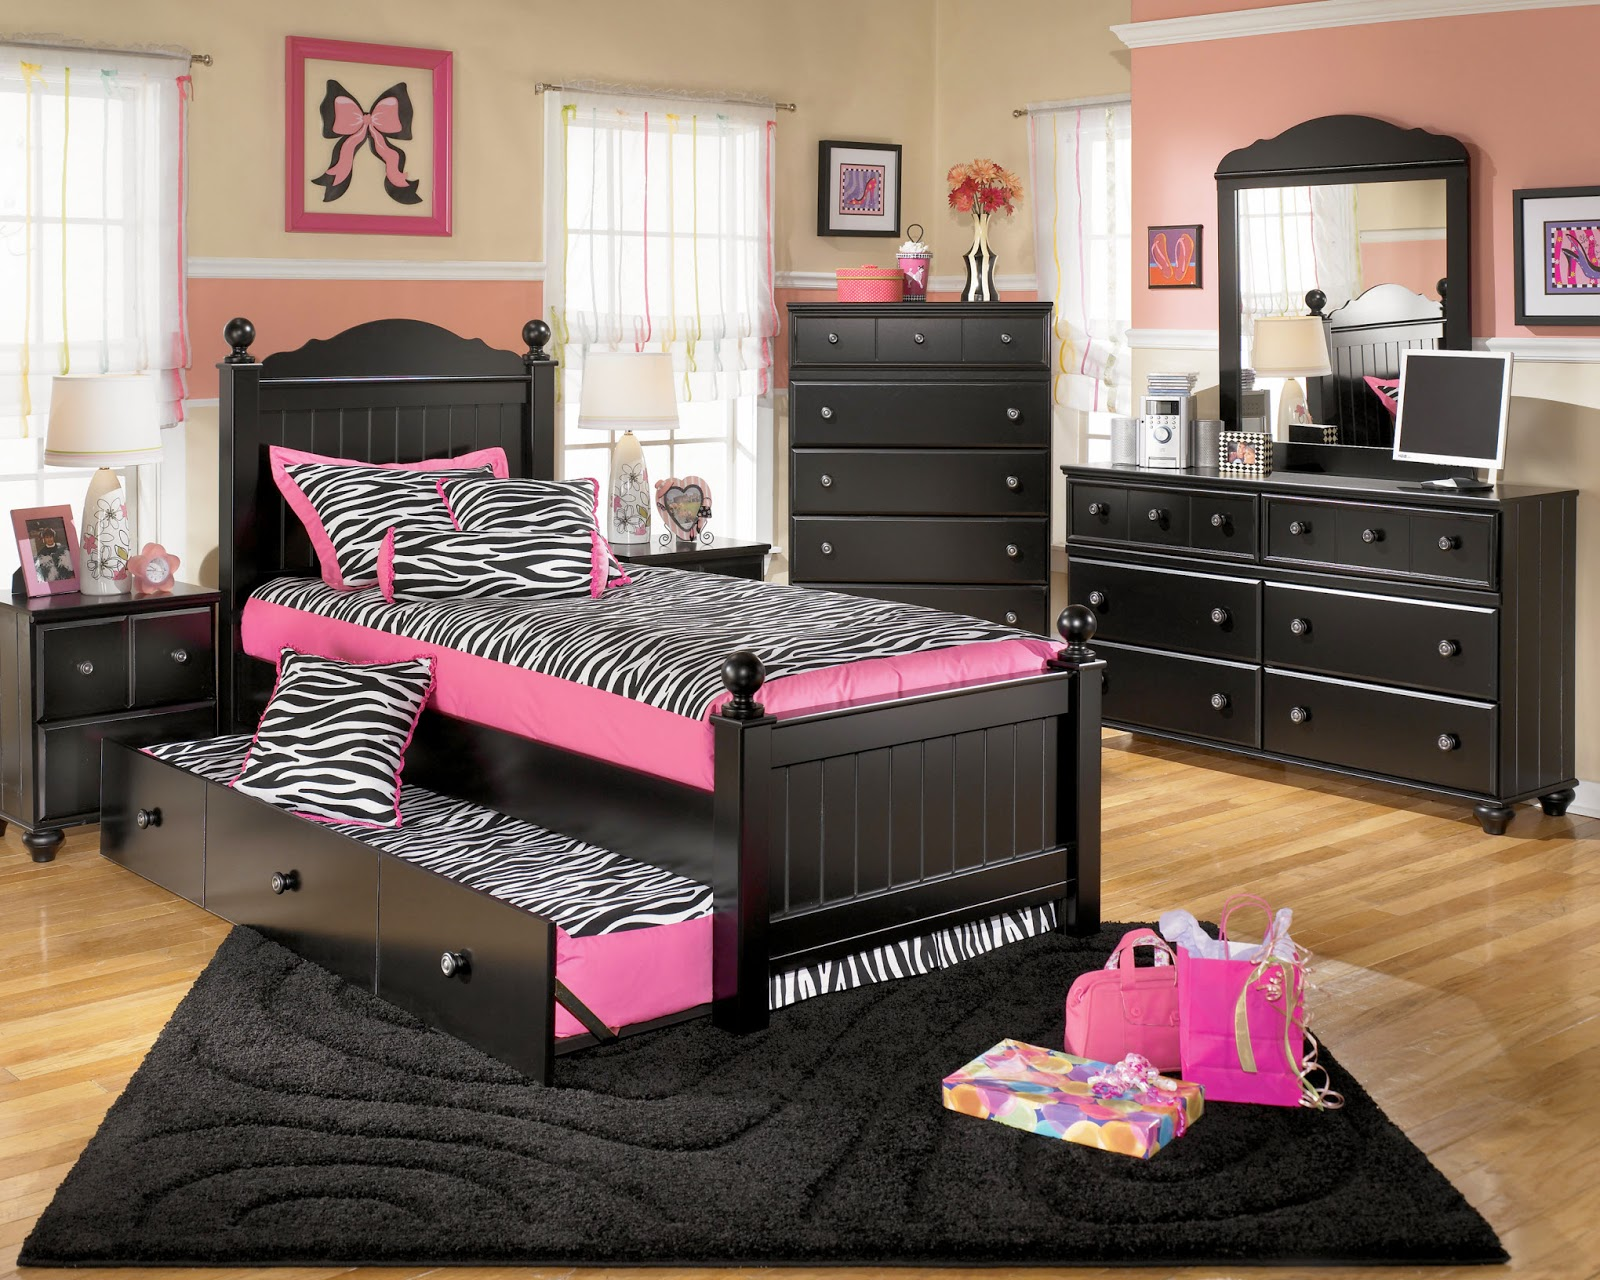 Custom Angel: Kids Bedroom Furniture Sets for Girls: Plan and Idea